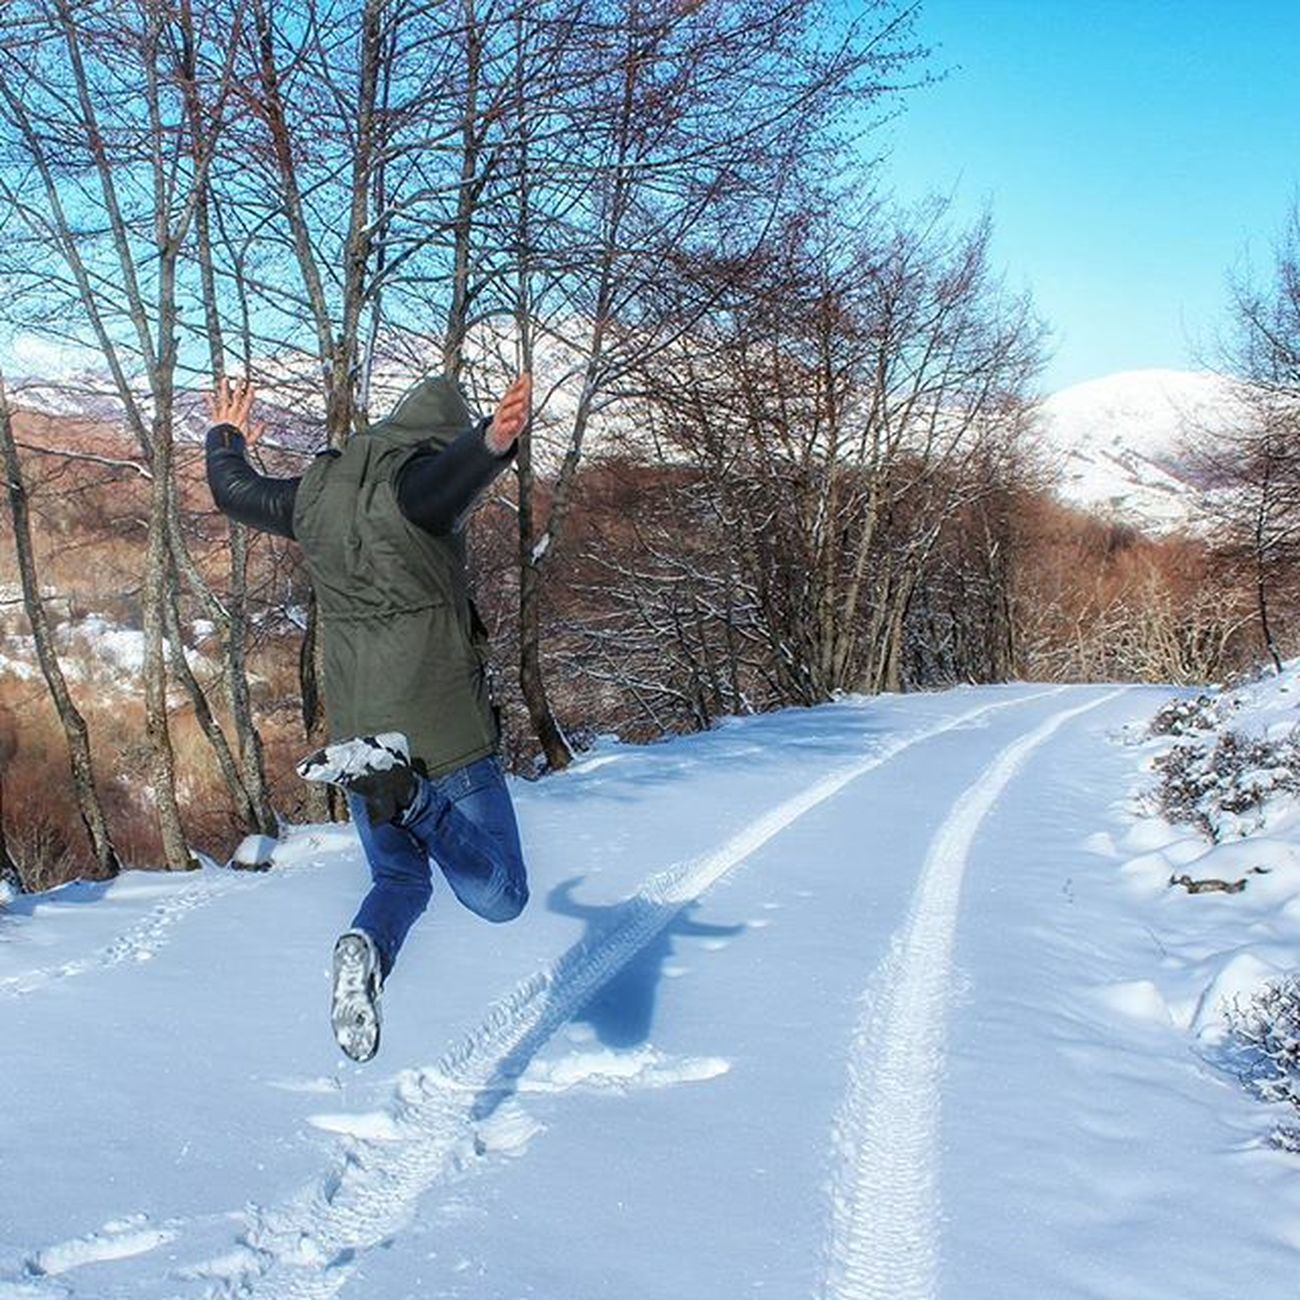 Jumping in the Snow... Myvallo Igers_salerno Igerscampania Igeritalia Dafareasassano Dafareasalerno Dafareincampania Insolitaitalia Campaniafelix Nature Naturelover Instanature Snowday Landscape_lovers Landscape Landscape_captures Landscape_specialist Jumping